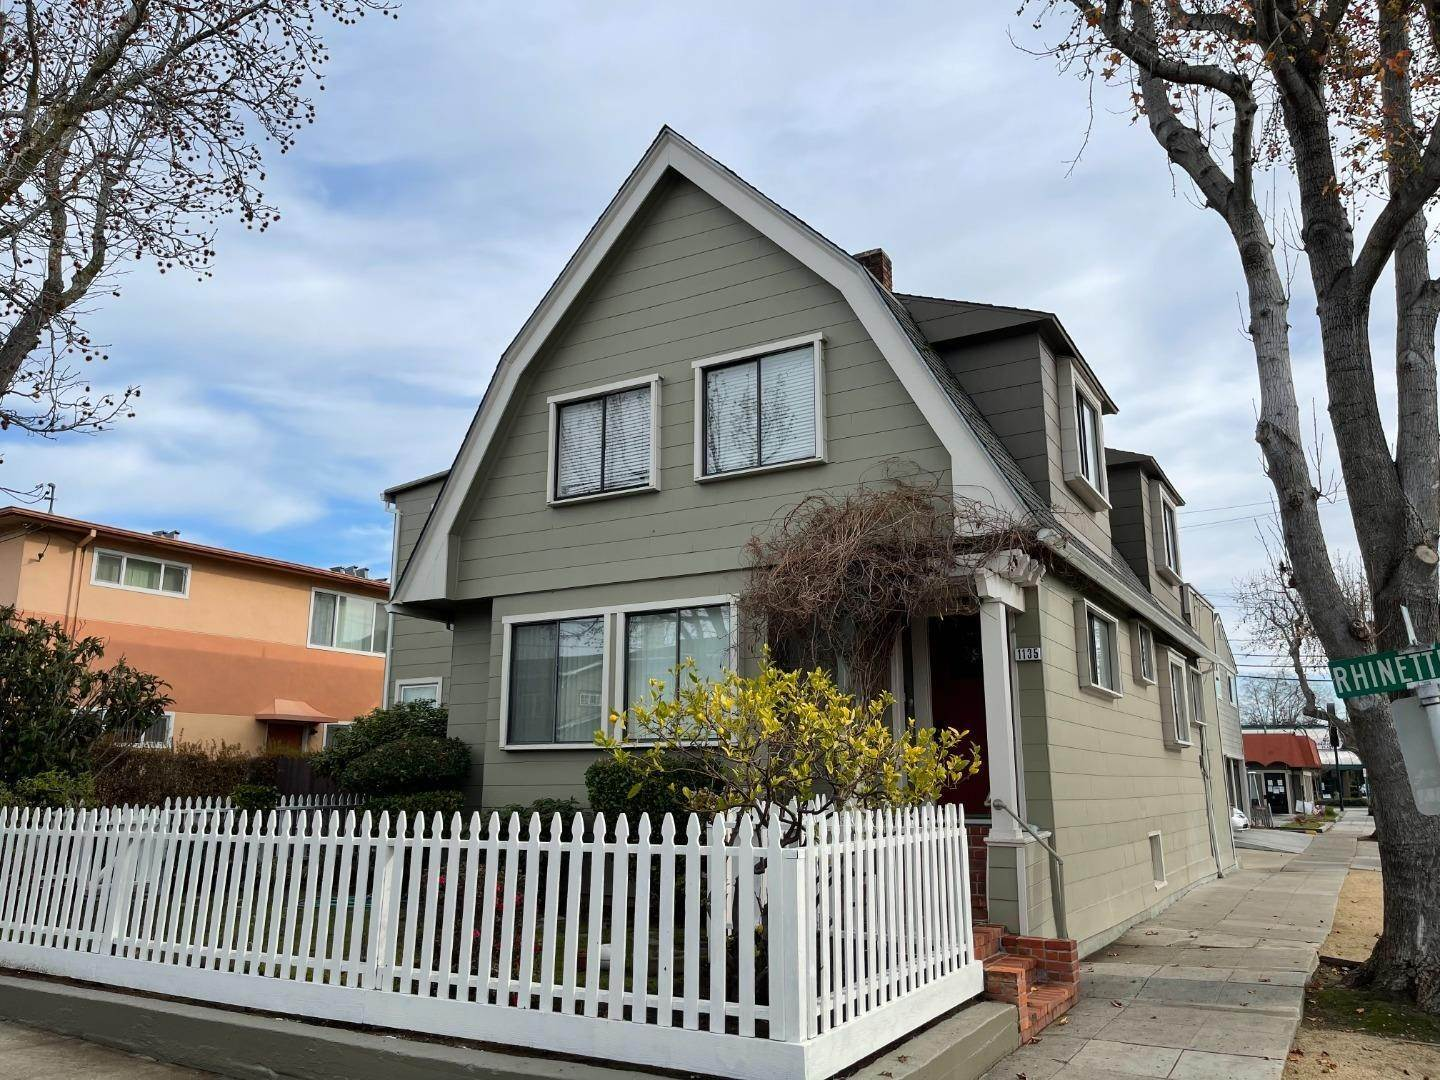 Multi-Family Homes for Sale at 1135 Rhinette Avenue Burlingame, California 94010 United States